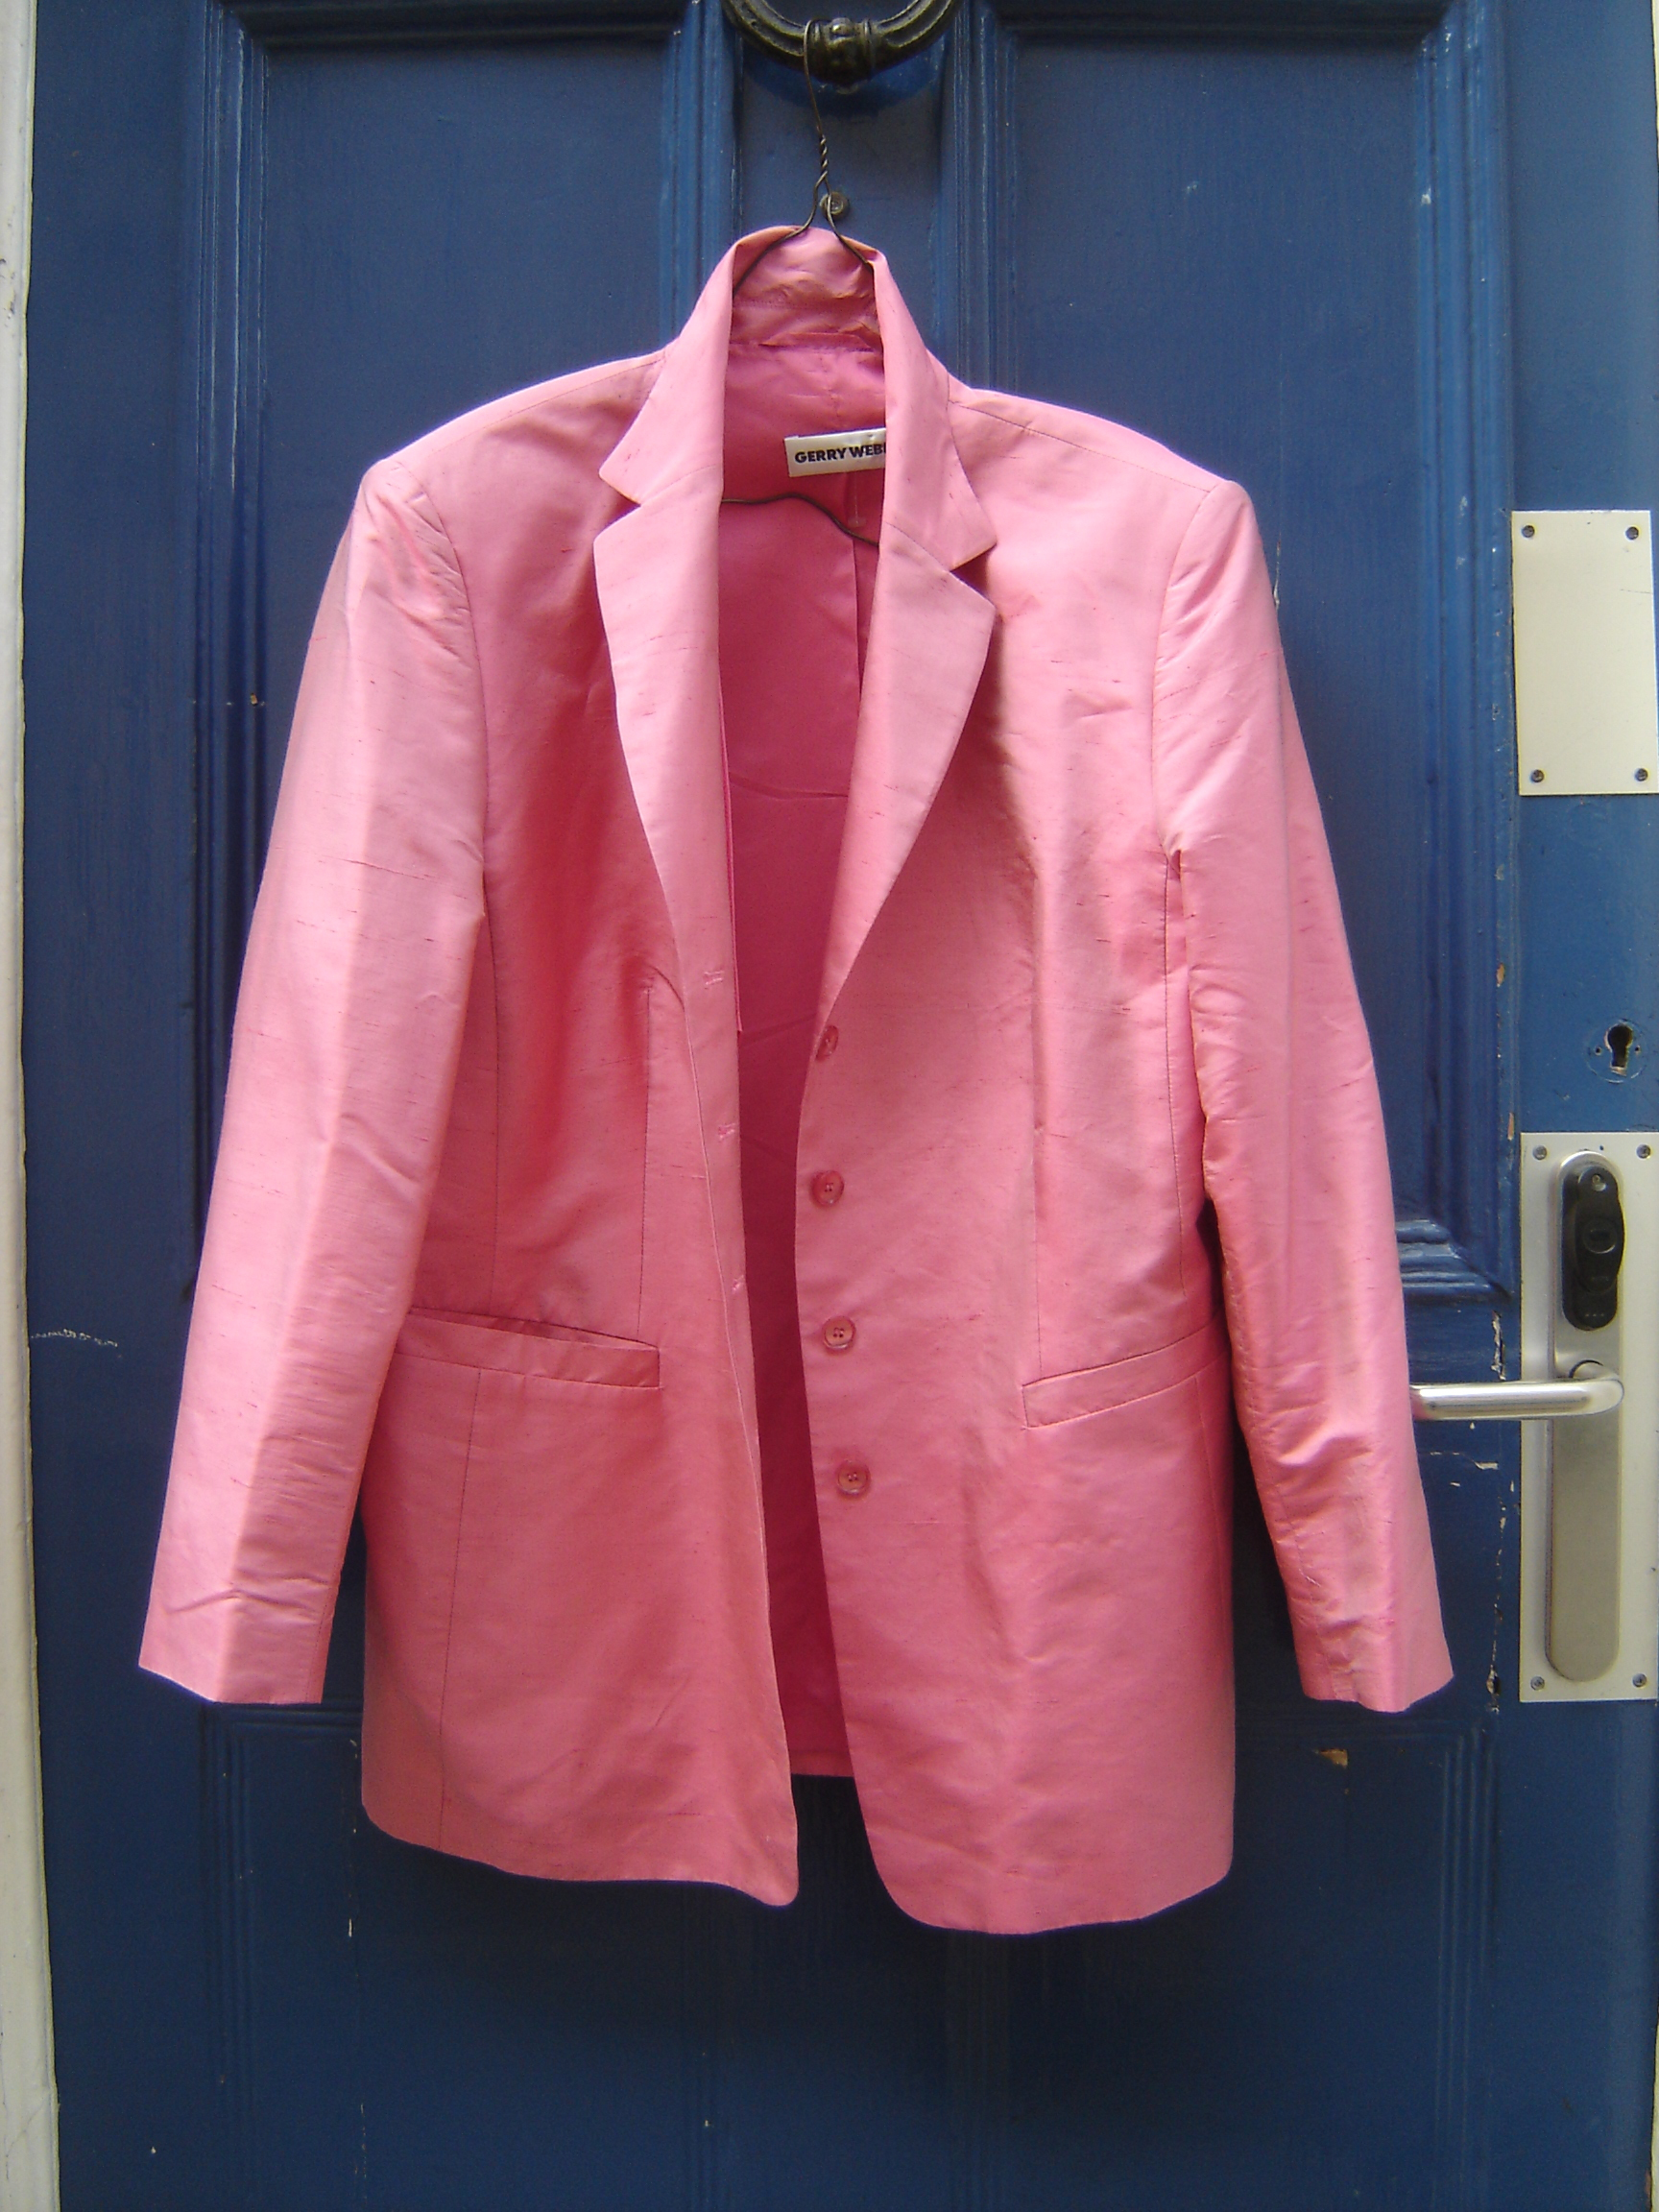 Gerry Weber pink silk jacket